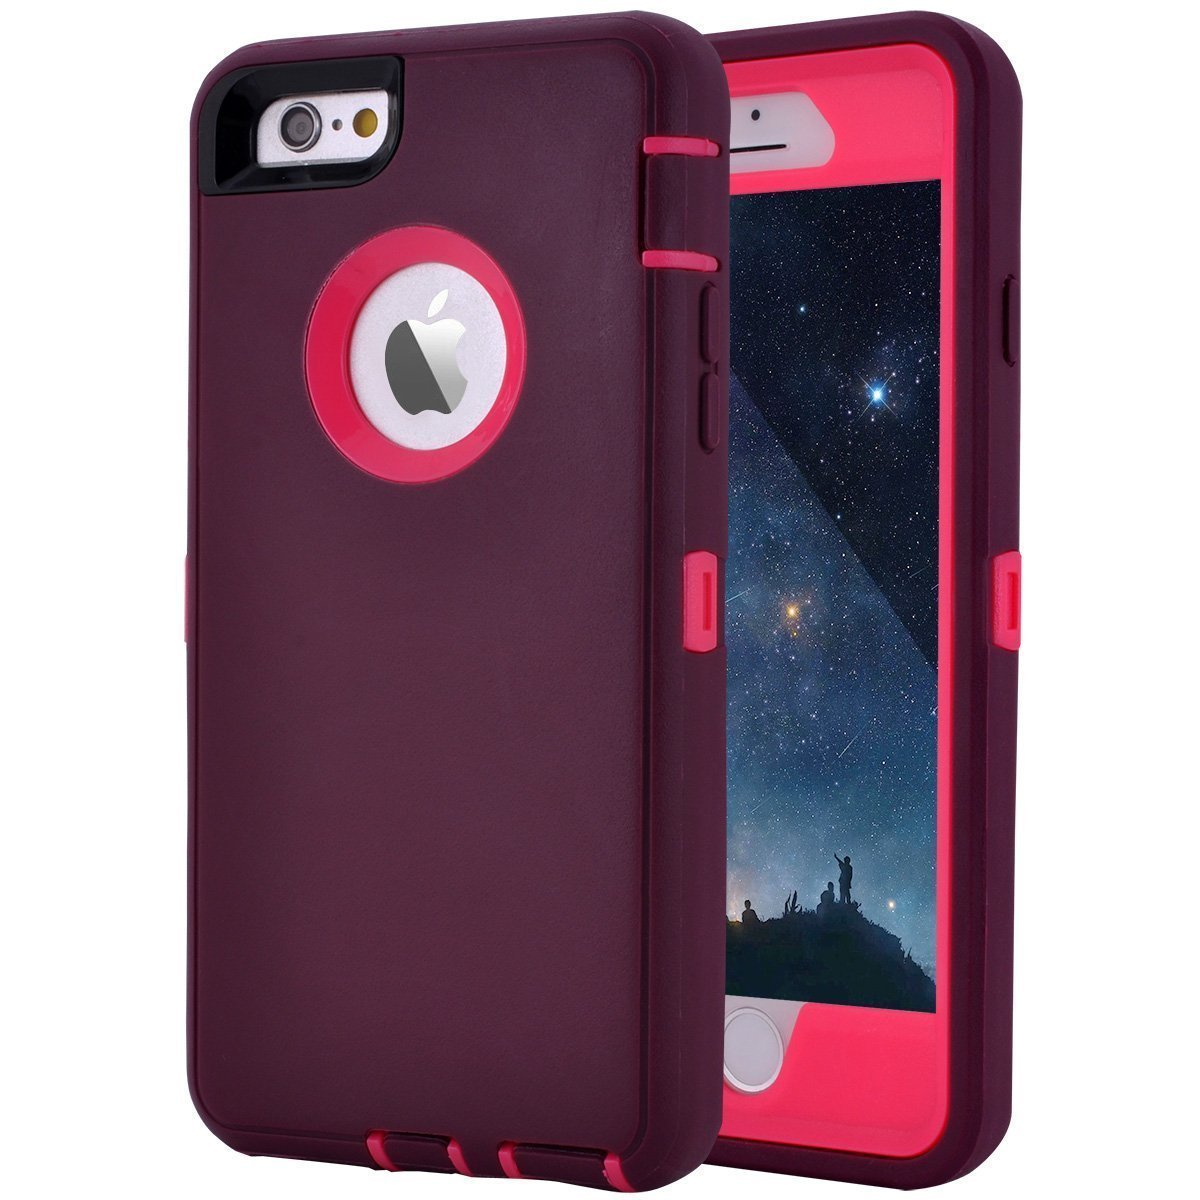 info for 7aefa 17065 MAXCURY iPhone 6 Case iPhone 6s Case Heavy Duty Shockproof Series Case for  iPhone 6/6S (4.7